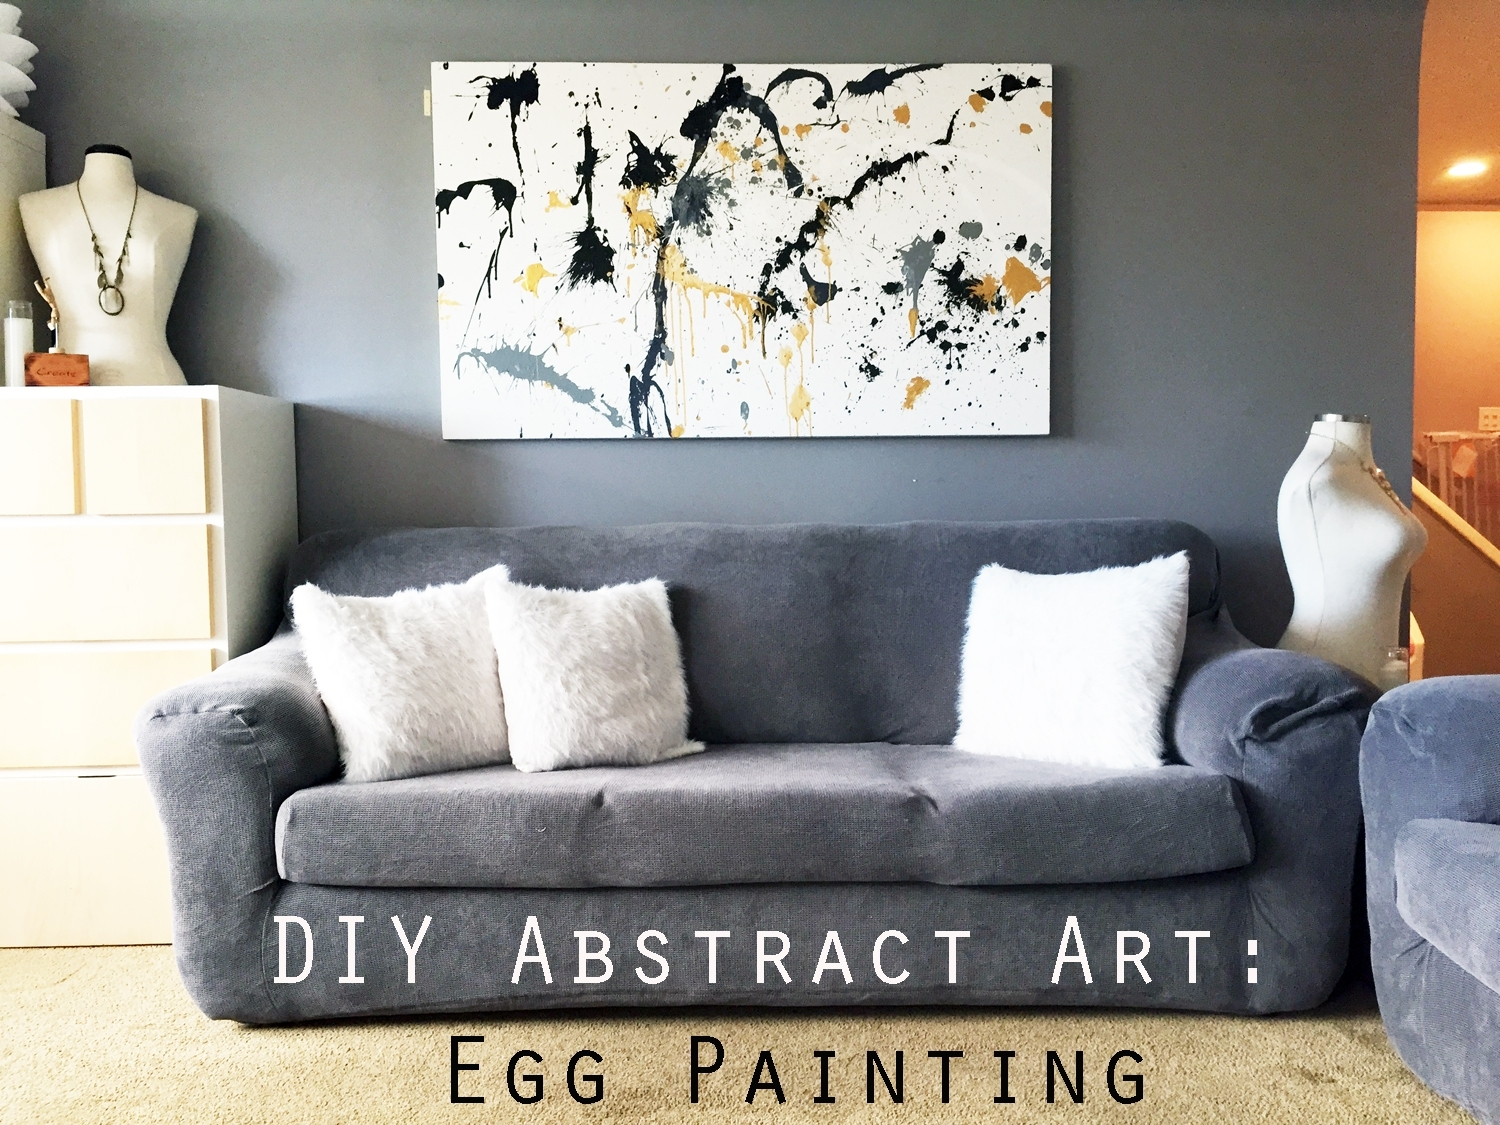 Diy Canvas Painting: Egg Splatter Gold Abstract Art – Creative Intended For 2017 Diy Abstract Canvas Wall Art (View 8 of 20)